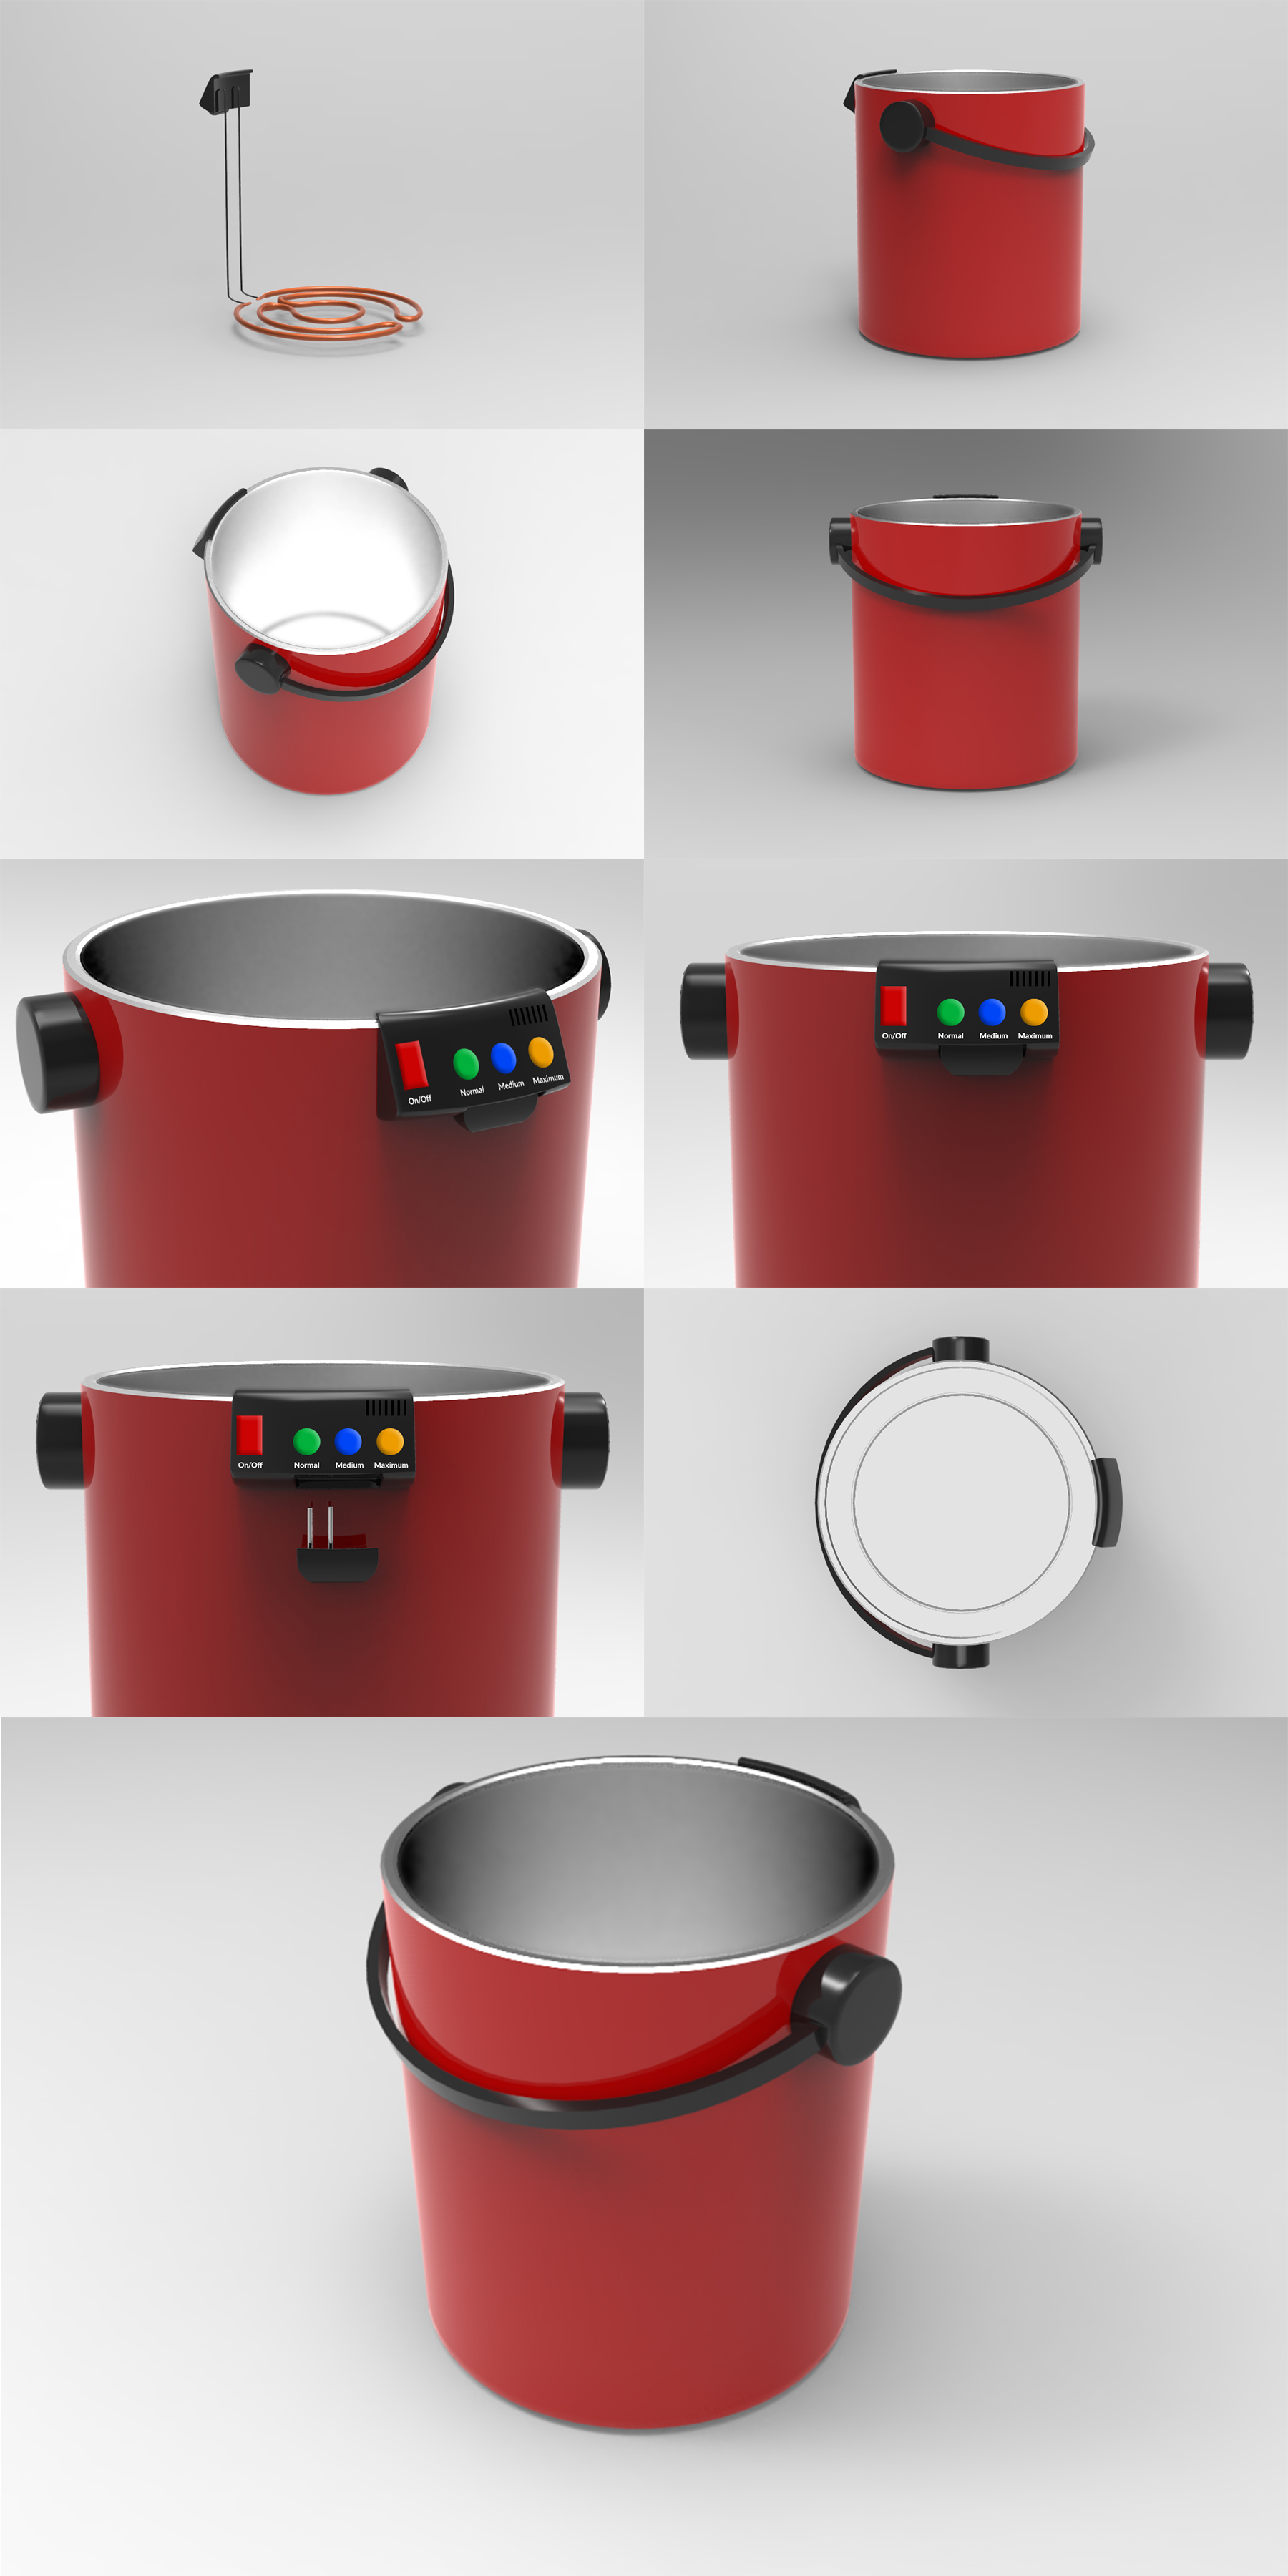 Smart Bucket Product Images by Usercible Design and UX Consulting